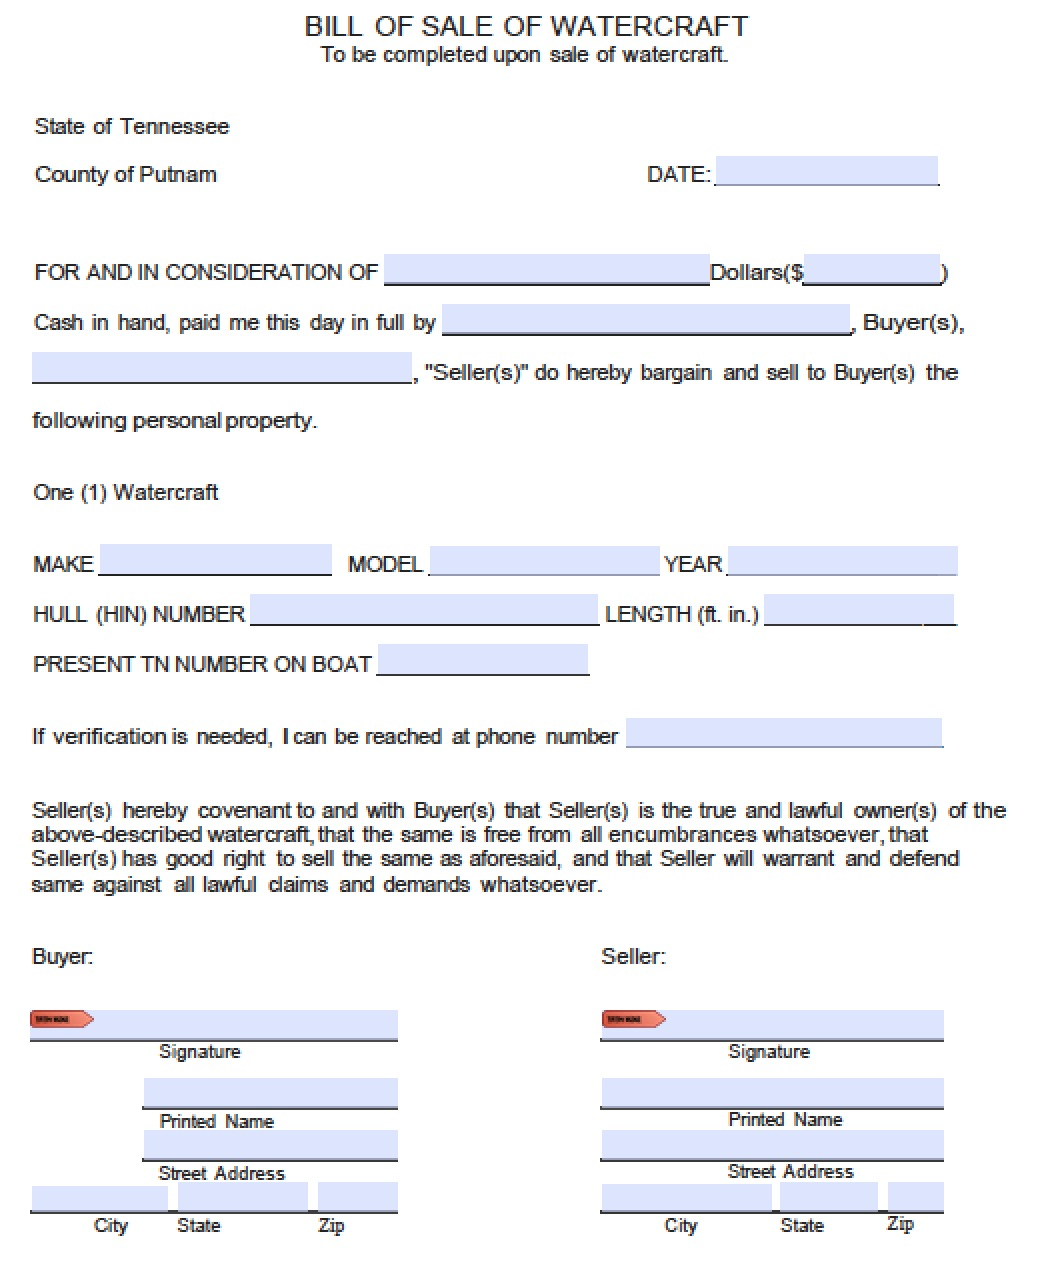 Free Putnam County, Tennessee Bill Of Sale Form